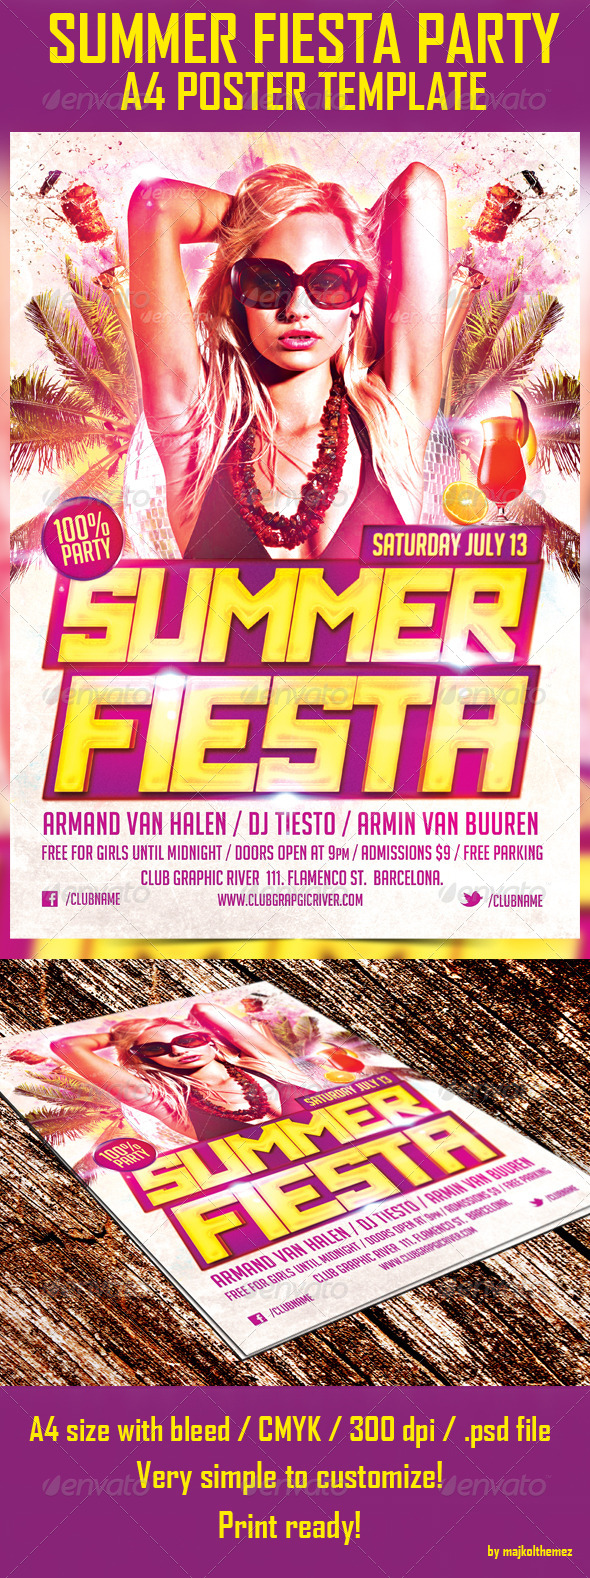 GraphicRiver Summer Fiesta Party Poster Template 5037975